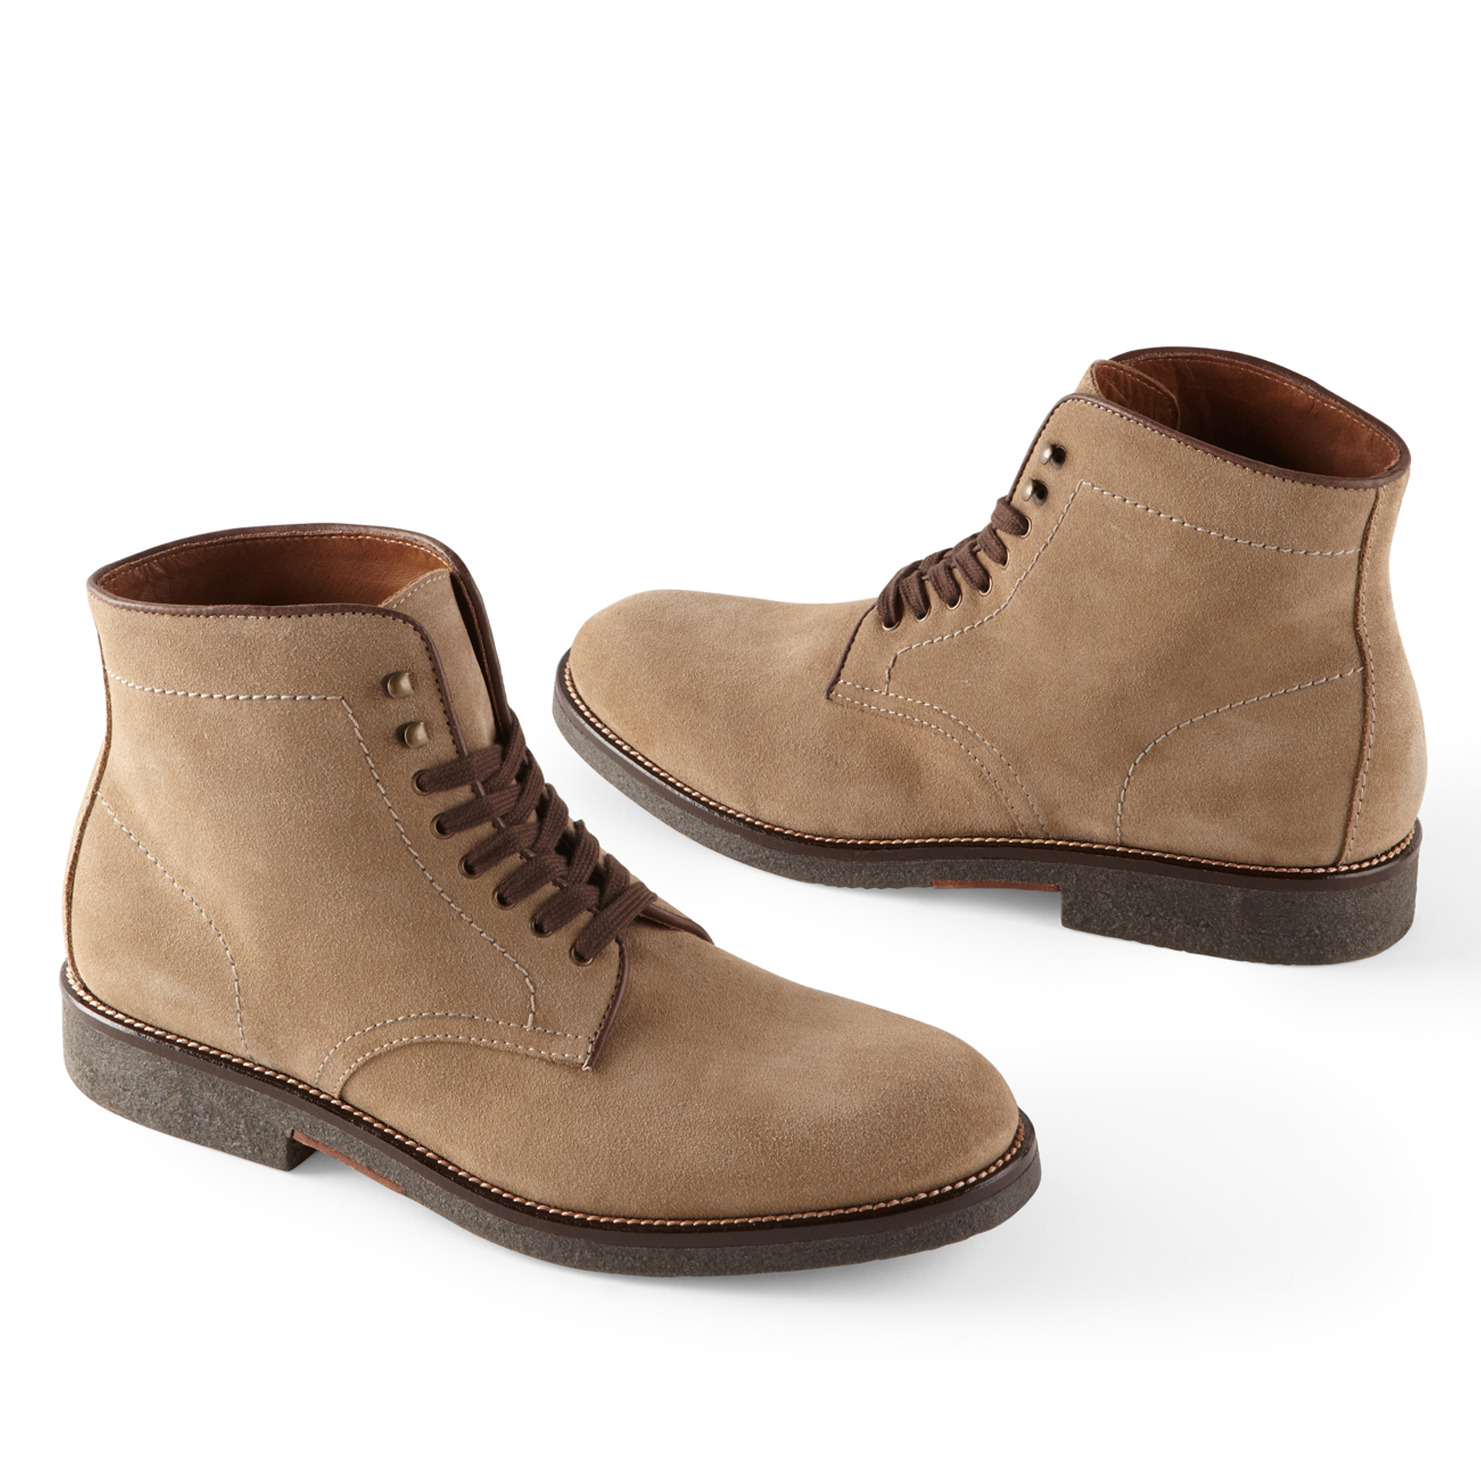 Clarks shoes from WalkingonaCloud! Shop for comfortable and stylish Clarks shoes, sandals and boots for women and men, including Wallabees and Wave. Find your pair of shoes from Clarks at a great price online in Canada!